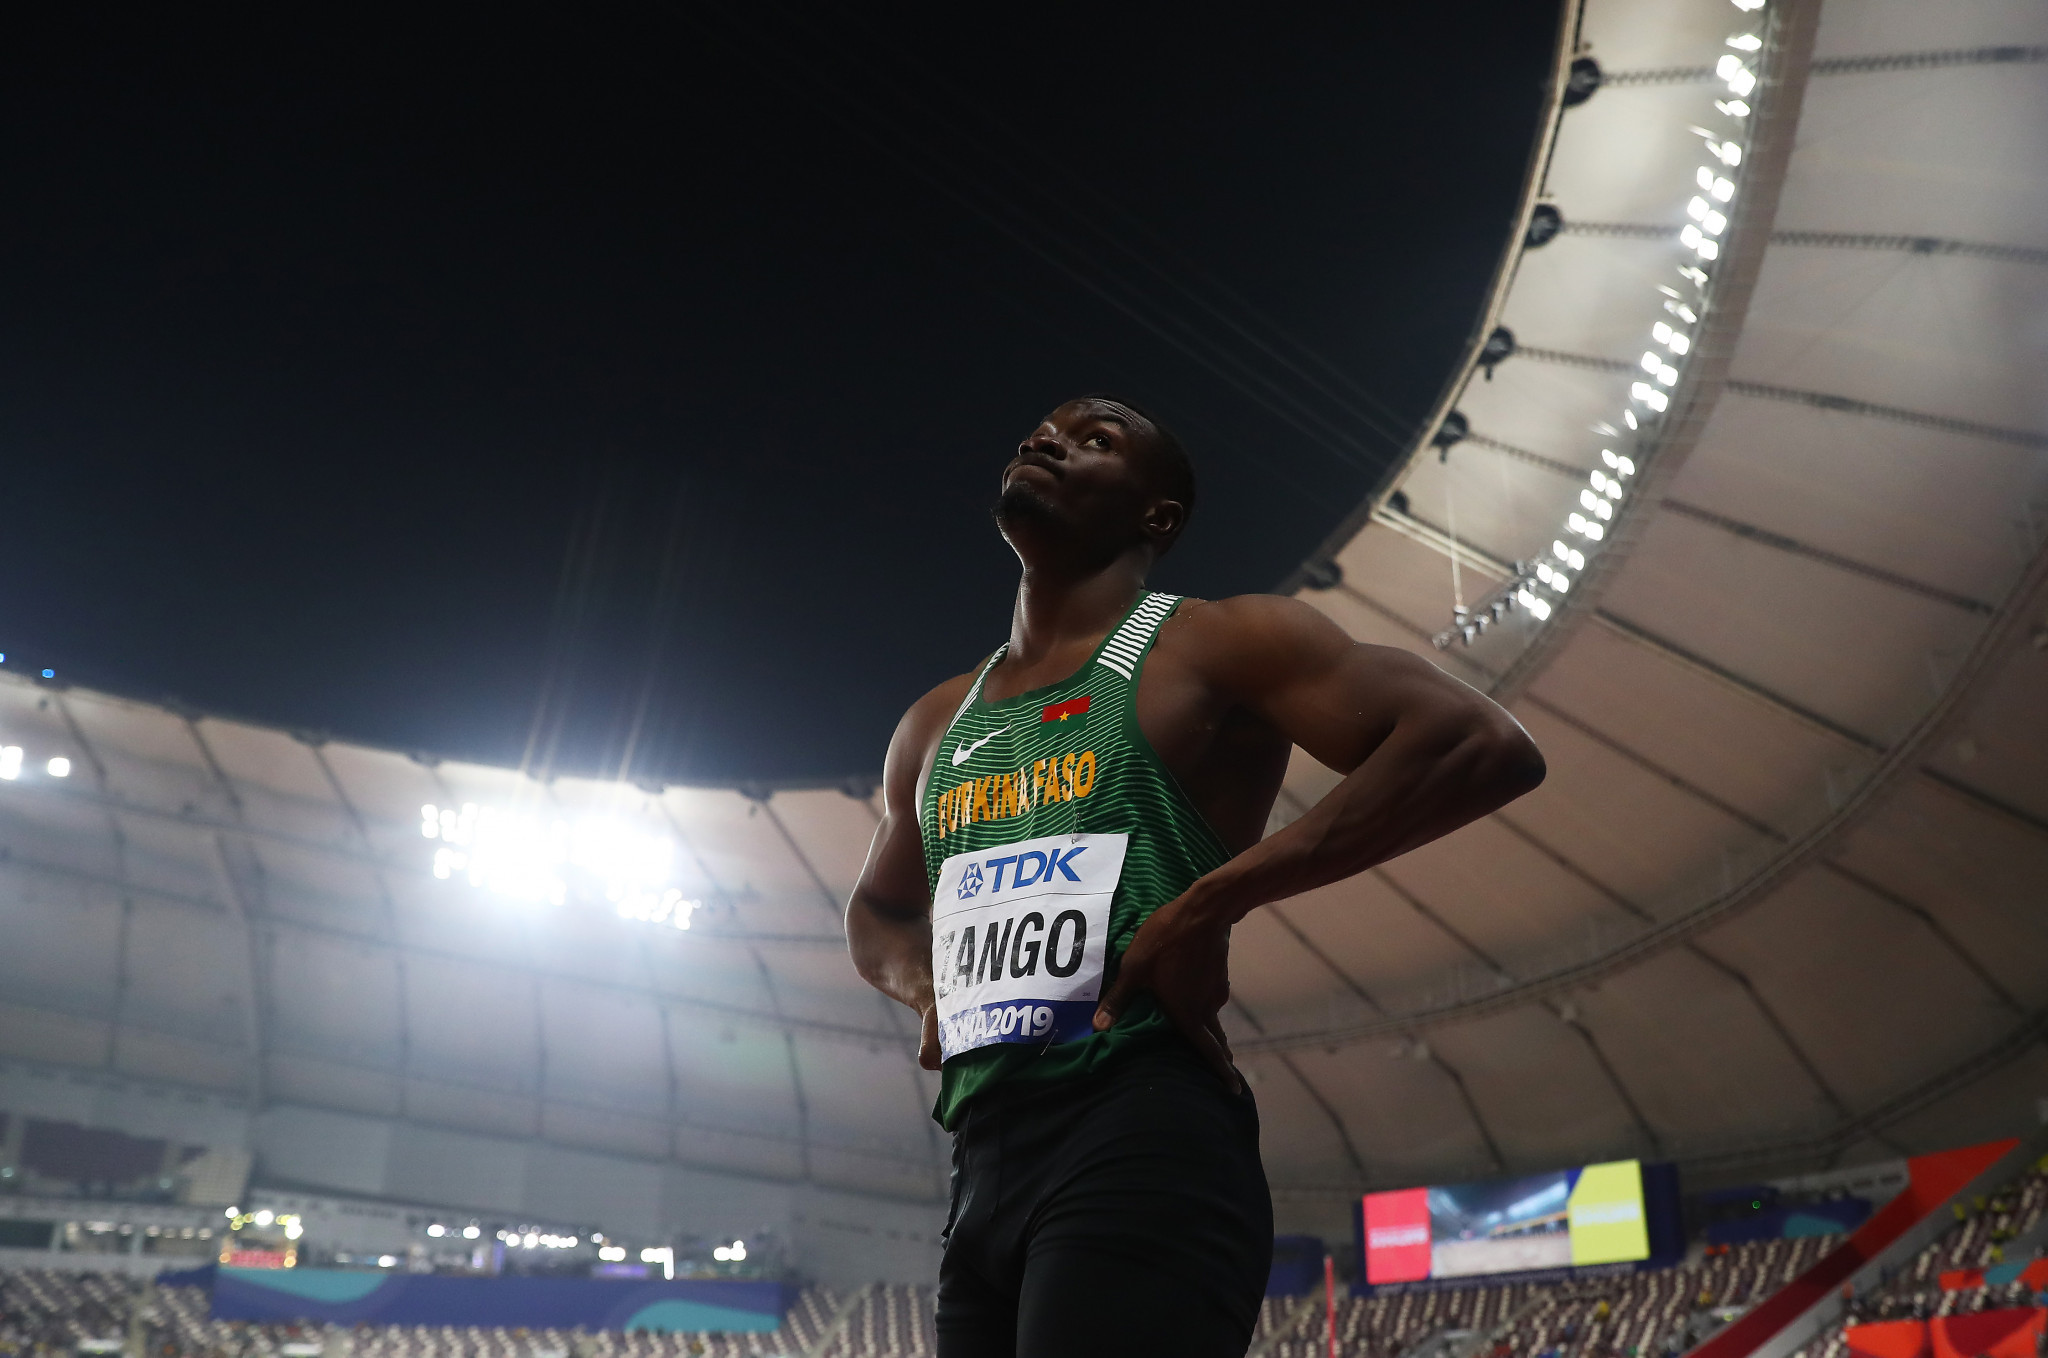 Long ago and far away...athletics at the Doha 2019 World Championships last September and October ©Getty Images